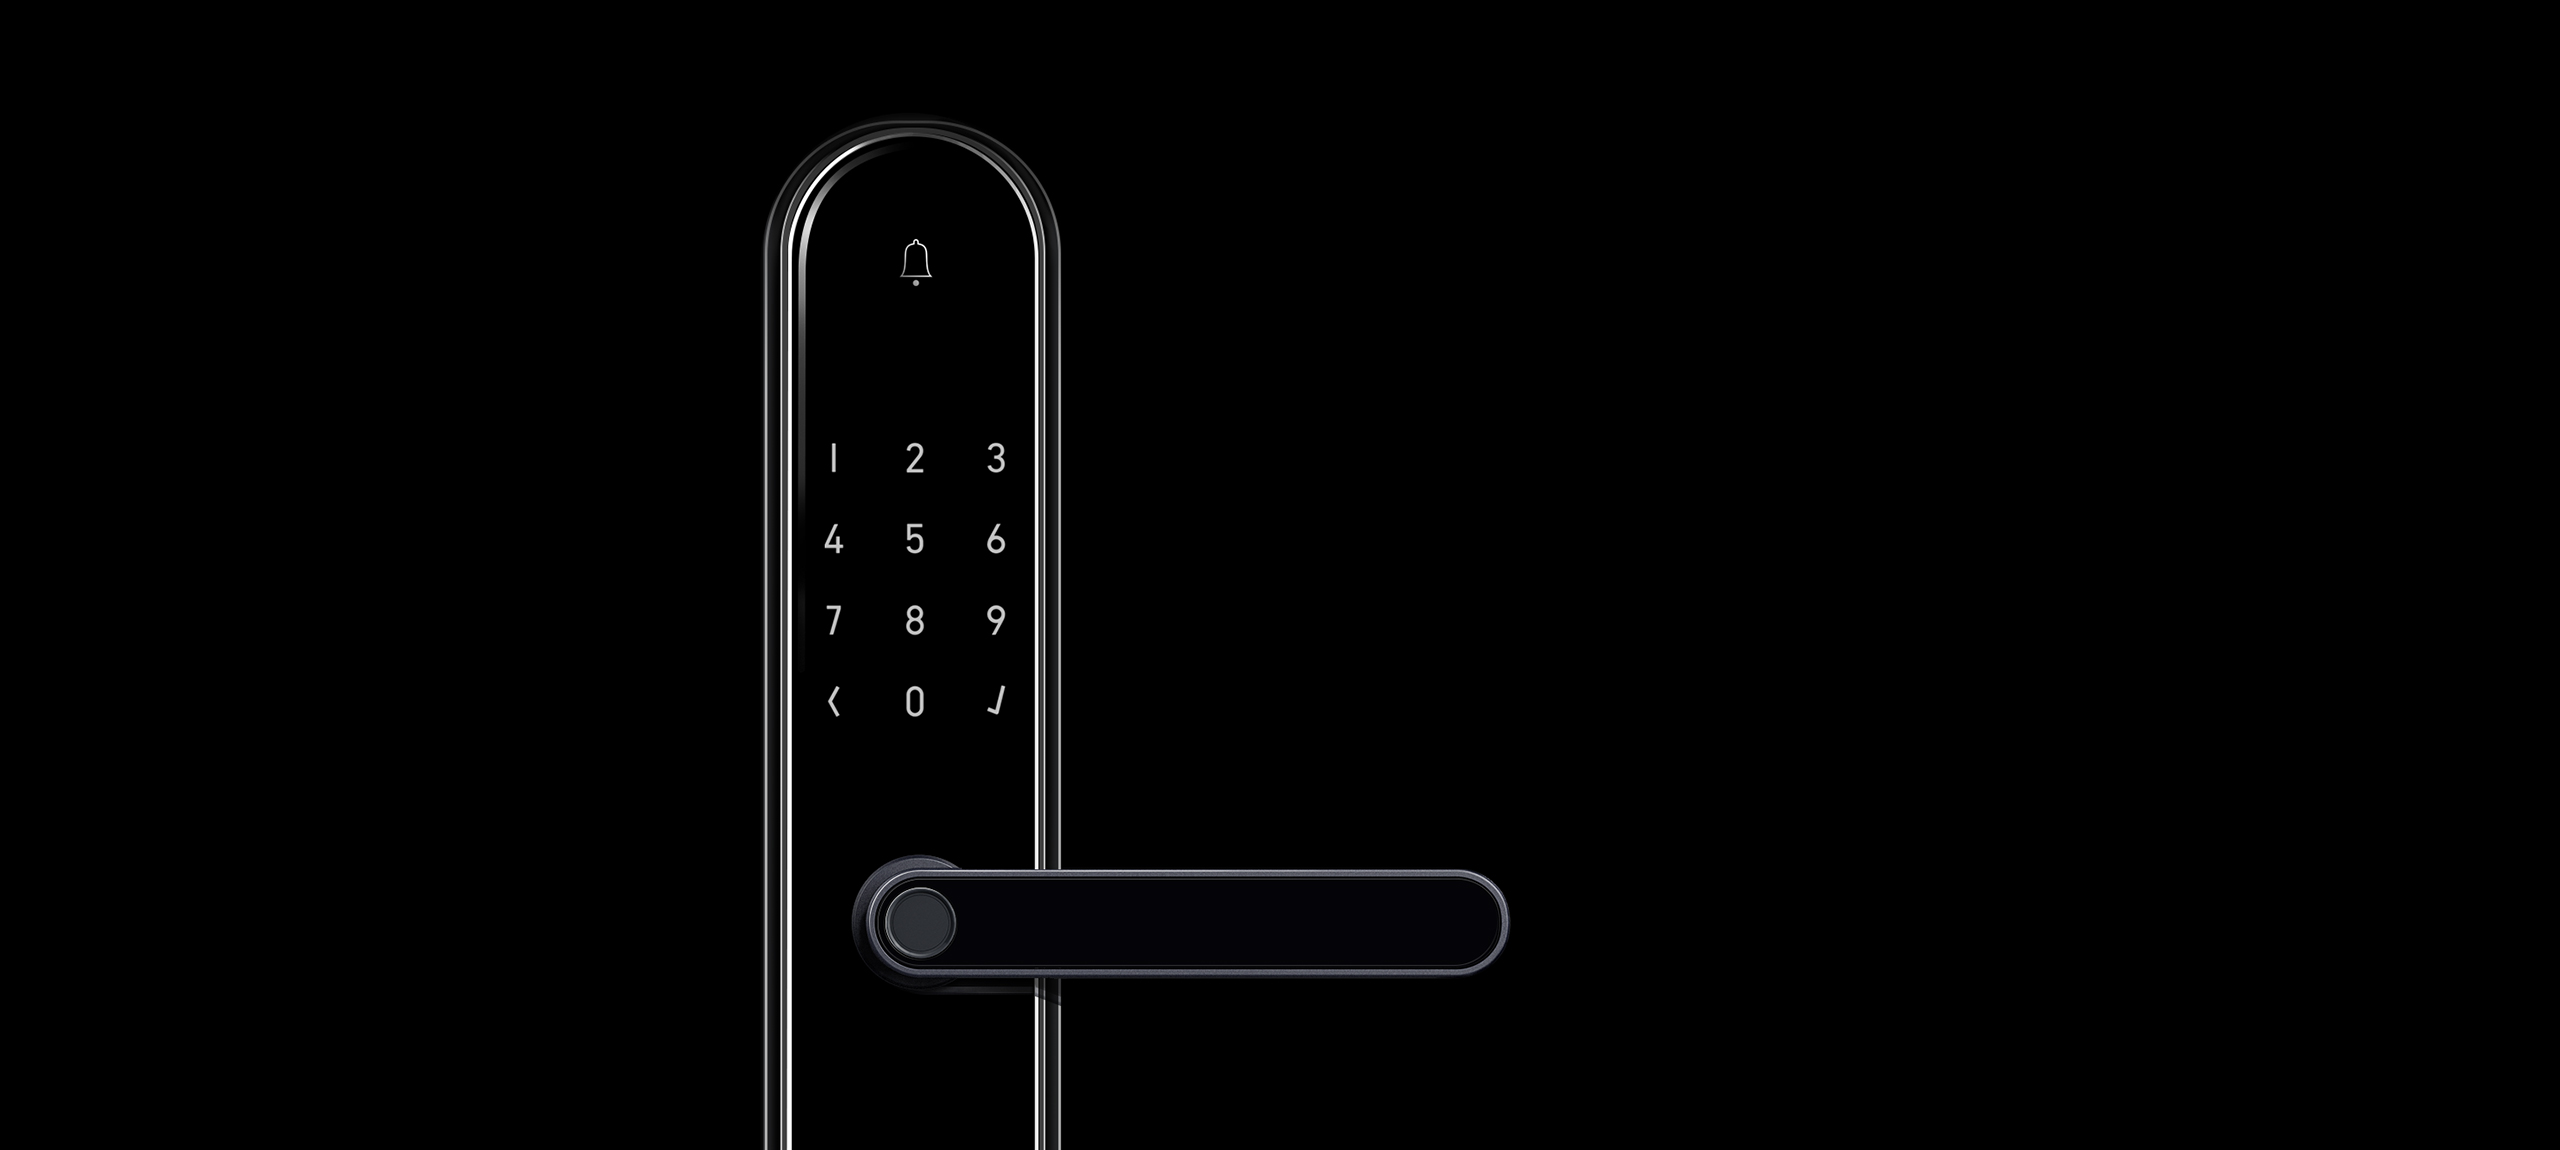 Aqara door lock S2 - HomeKit smart door lock